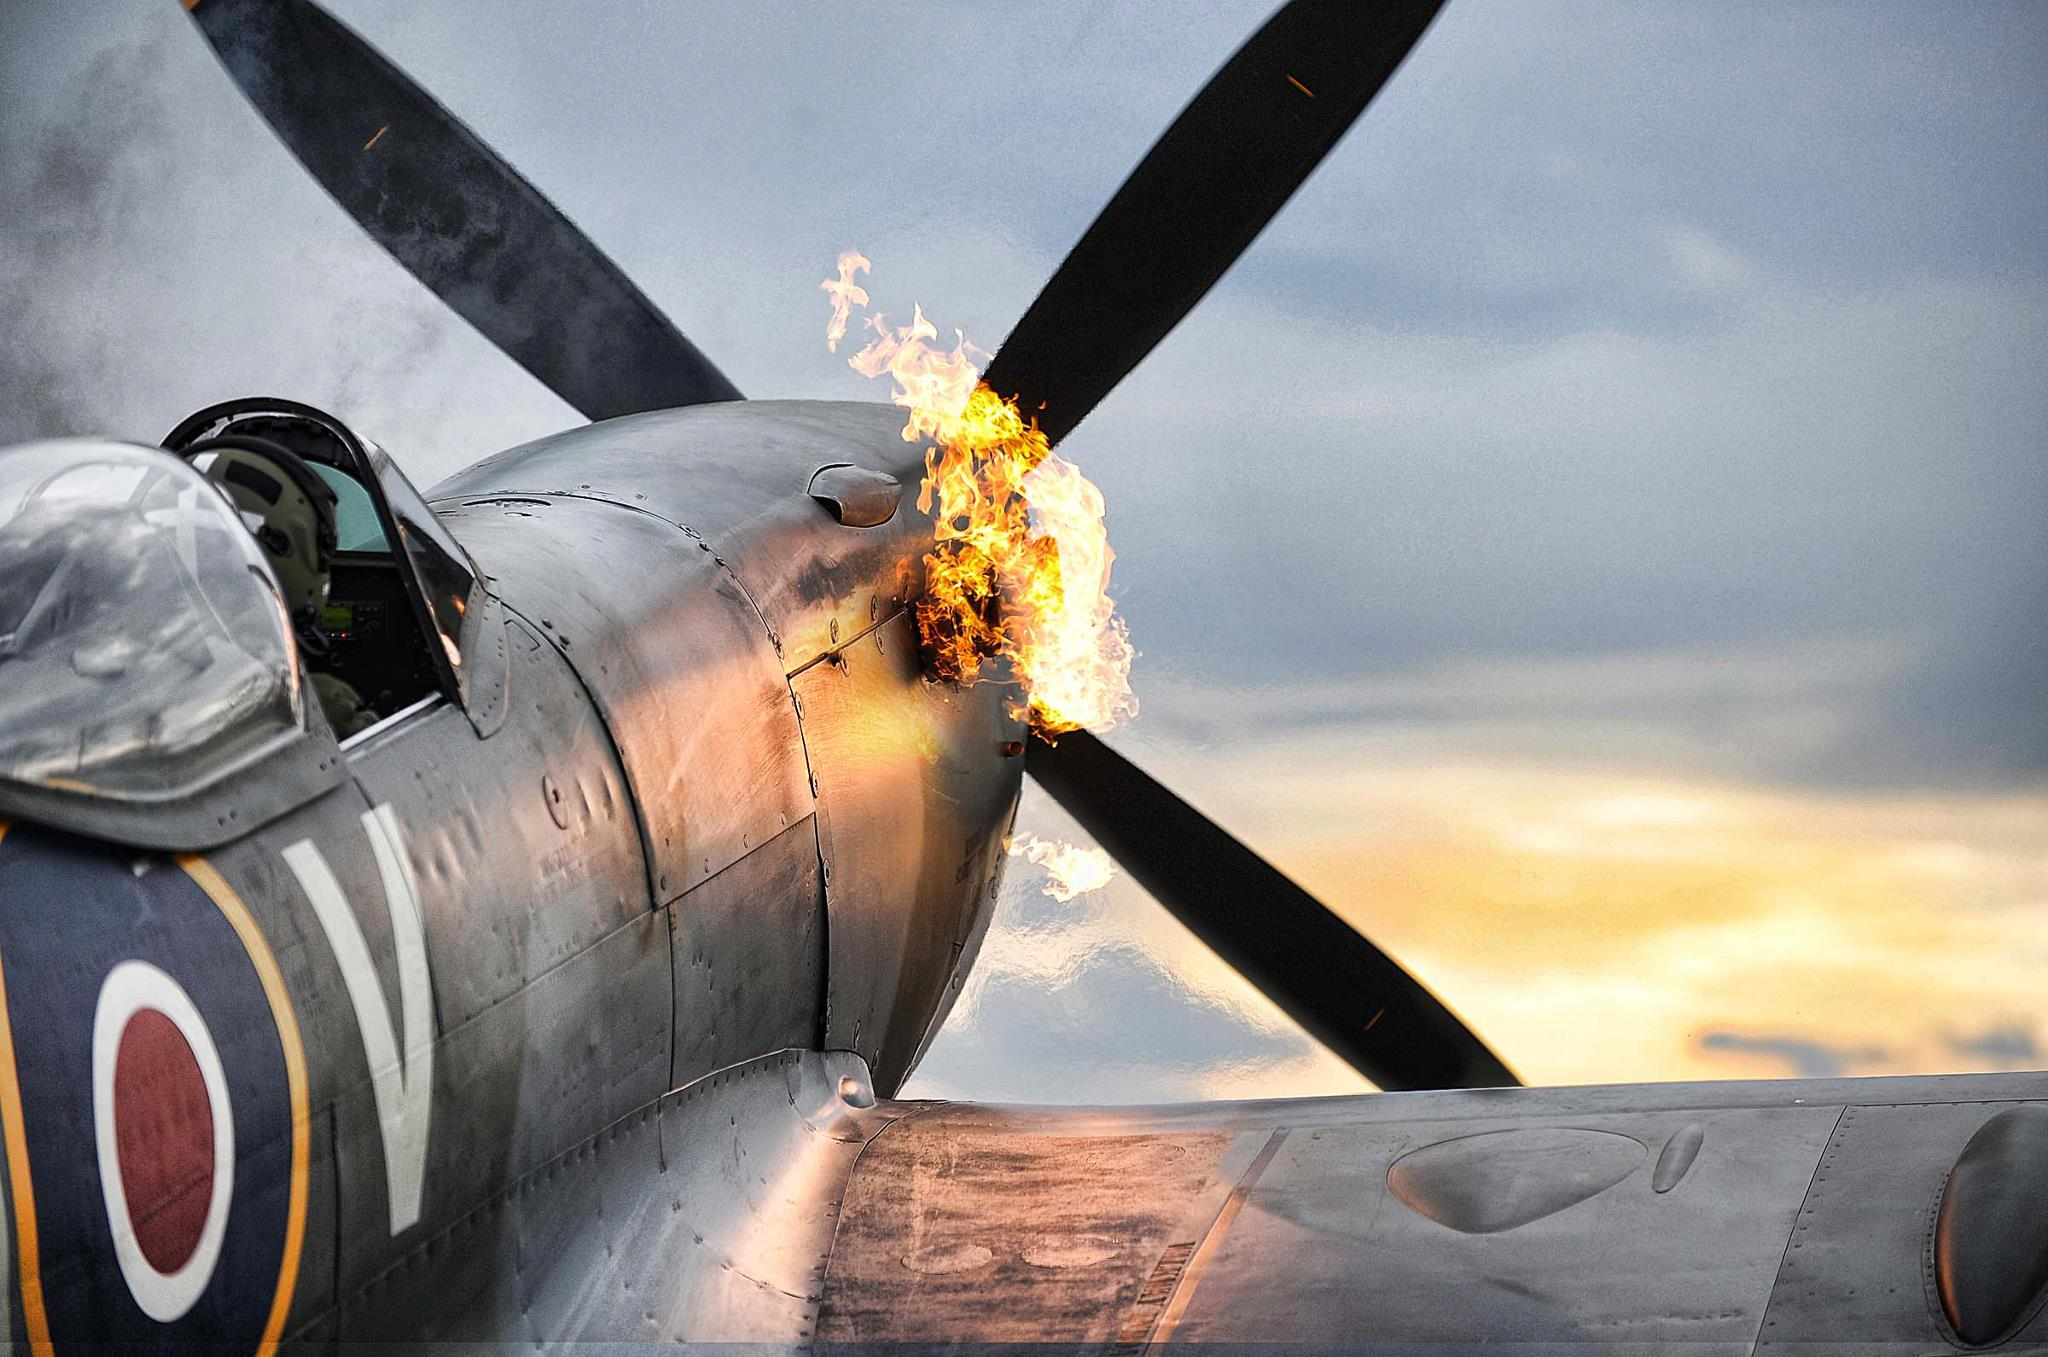 Merlin Engine Starts on a Supermarine Spitfire